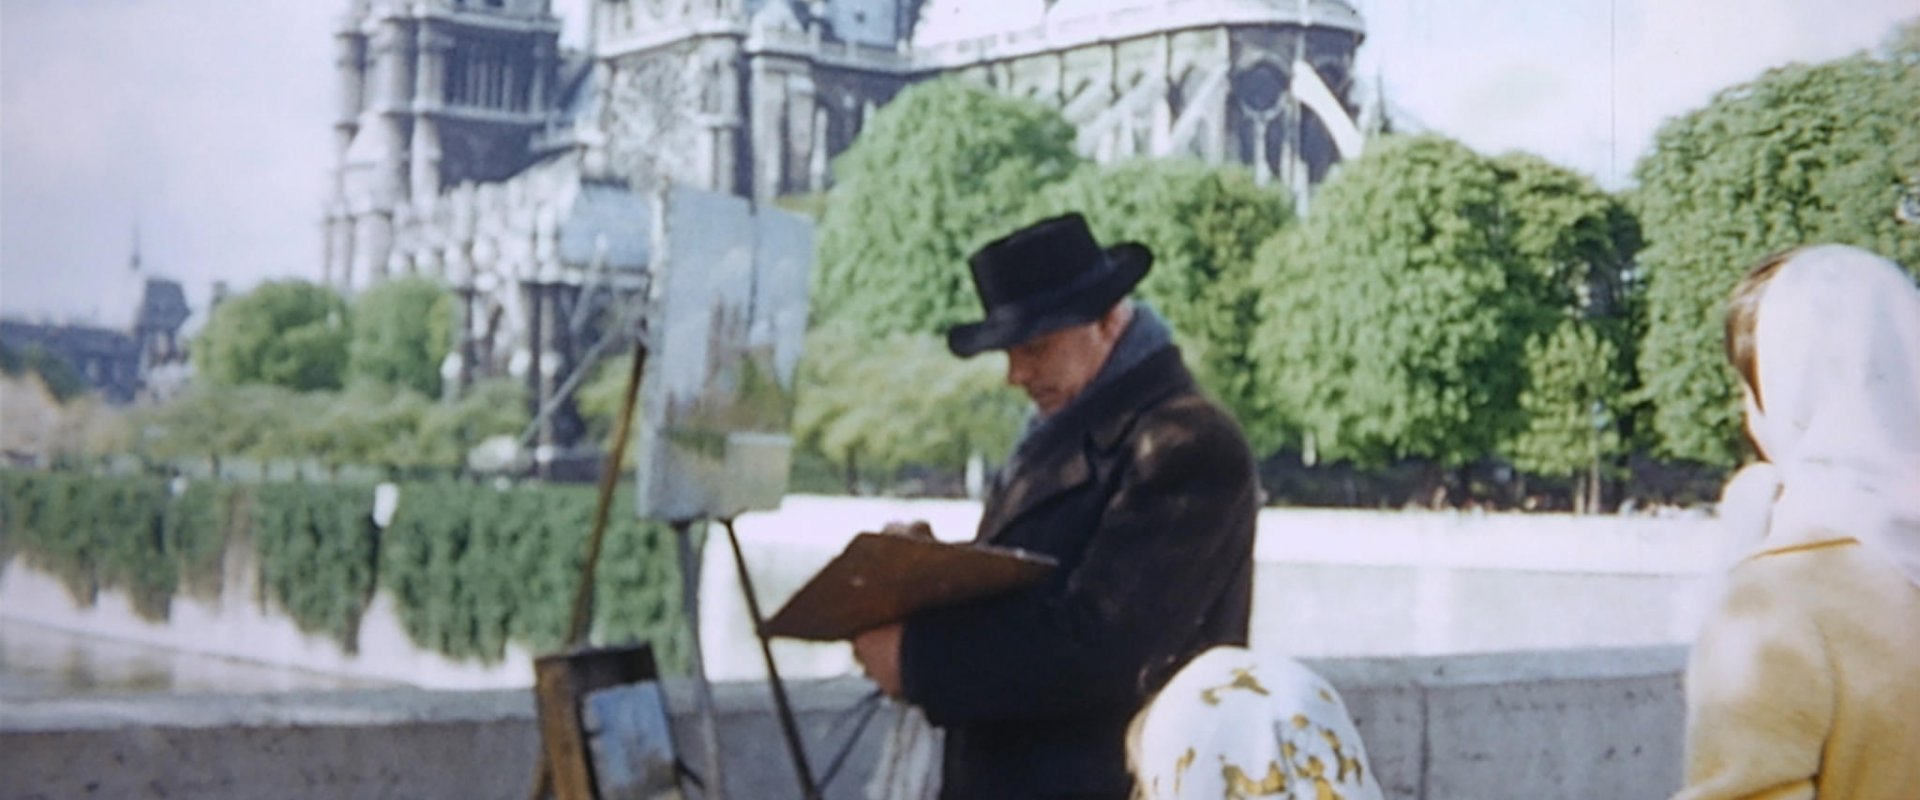 man painting in the street with women in head scarves